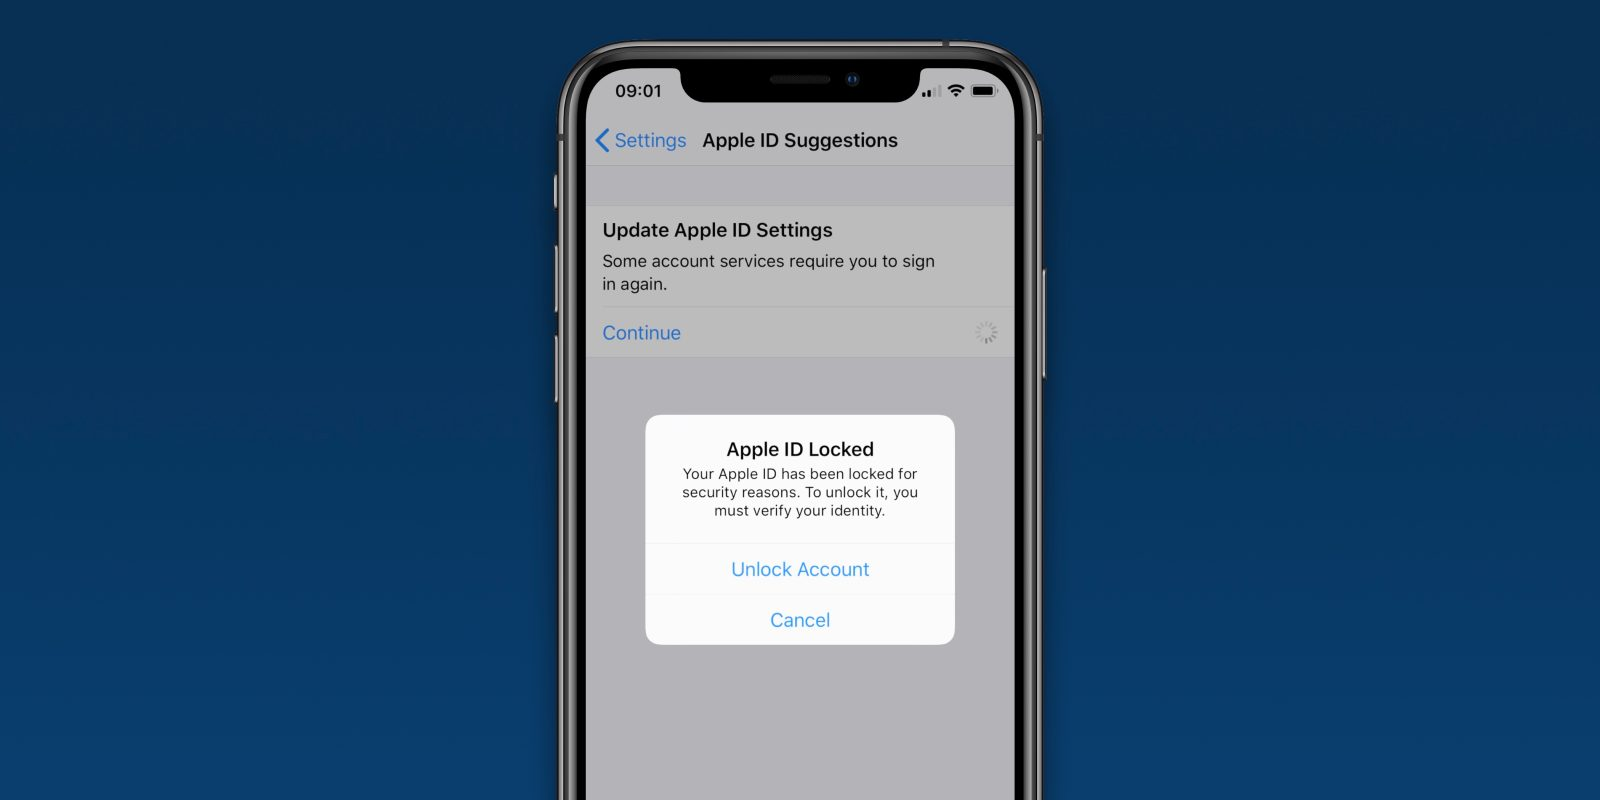 Some iPhone Users Finding their Apple ID Accounts Have been Inexplicably Locked, Requiring Password Resets